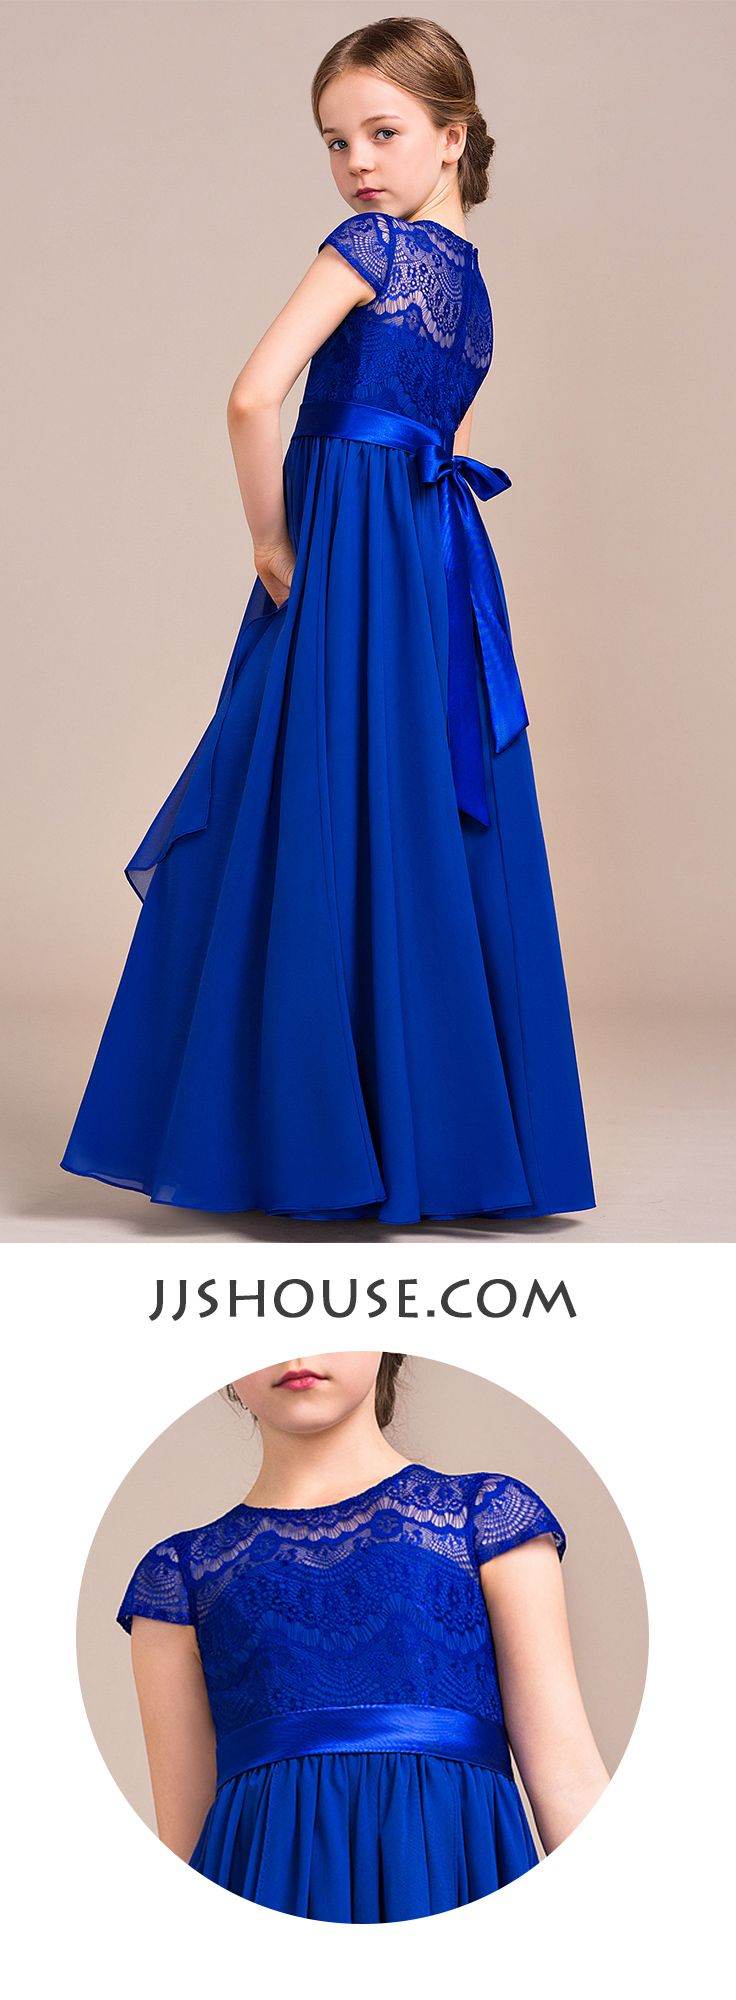 Classy little gown for your junior bridesmaid! #jjshouse